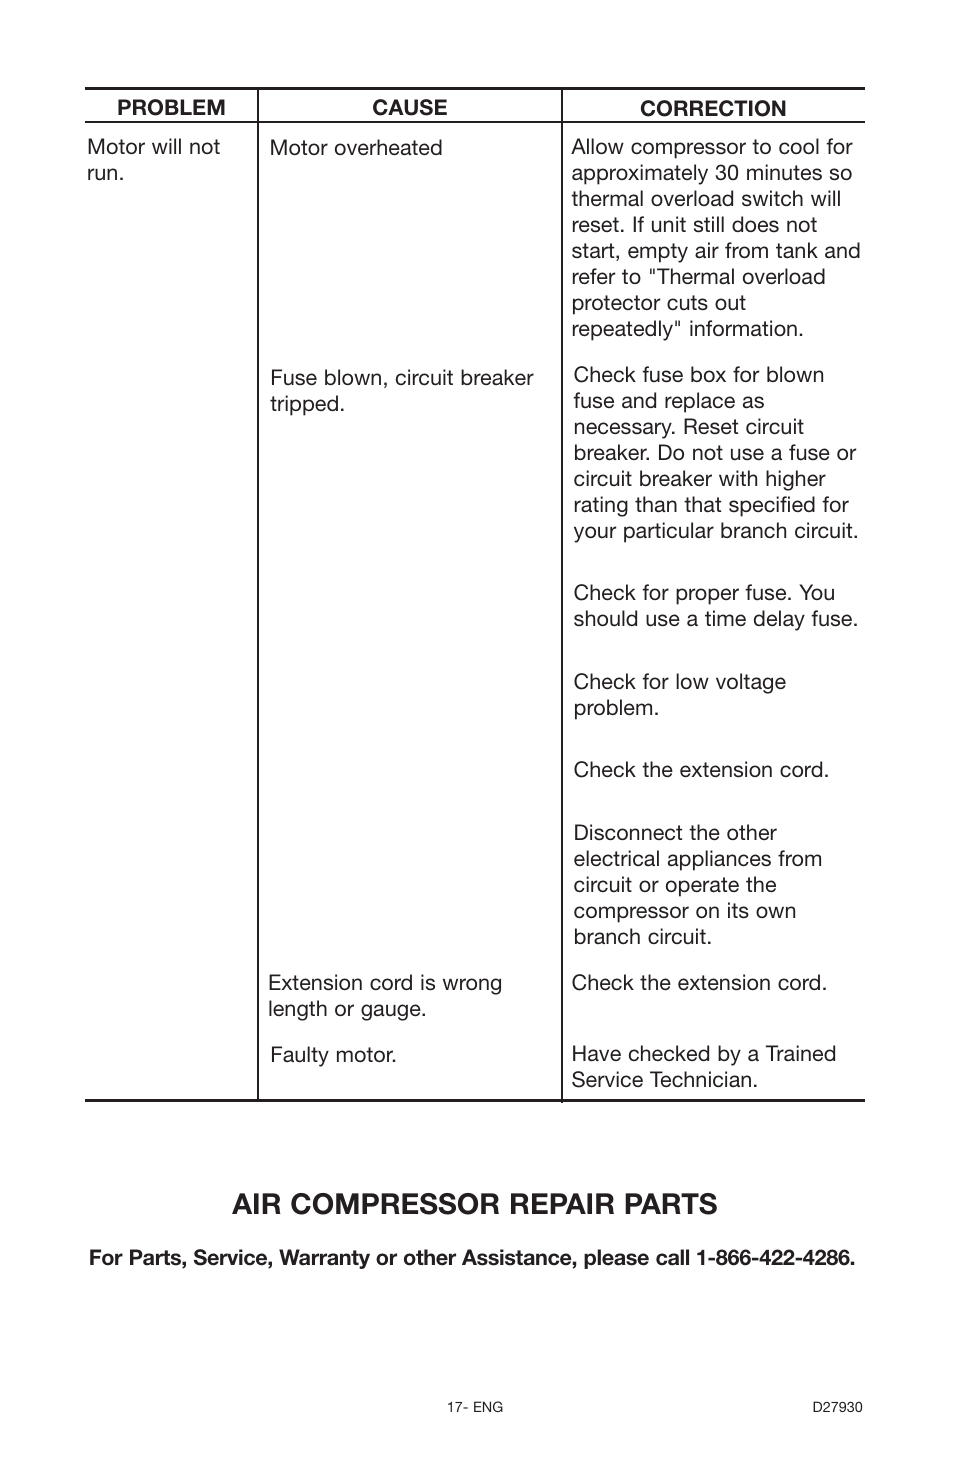 Air Compressor Repair Parts Delta Shopmaster Cp200 User Manual Cut Out Fuse Box Page 17 18